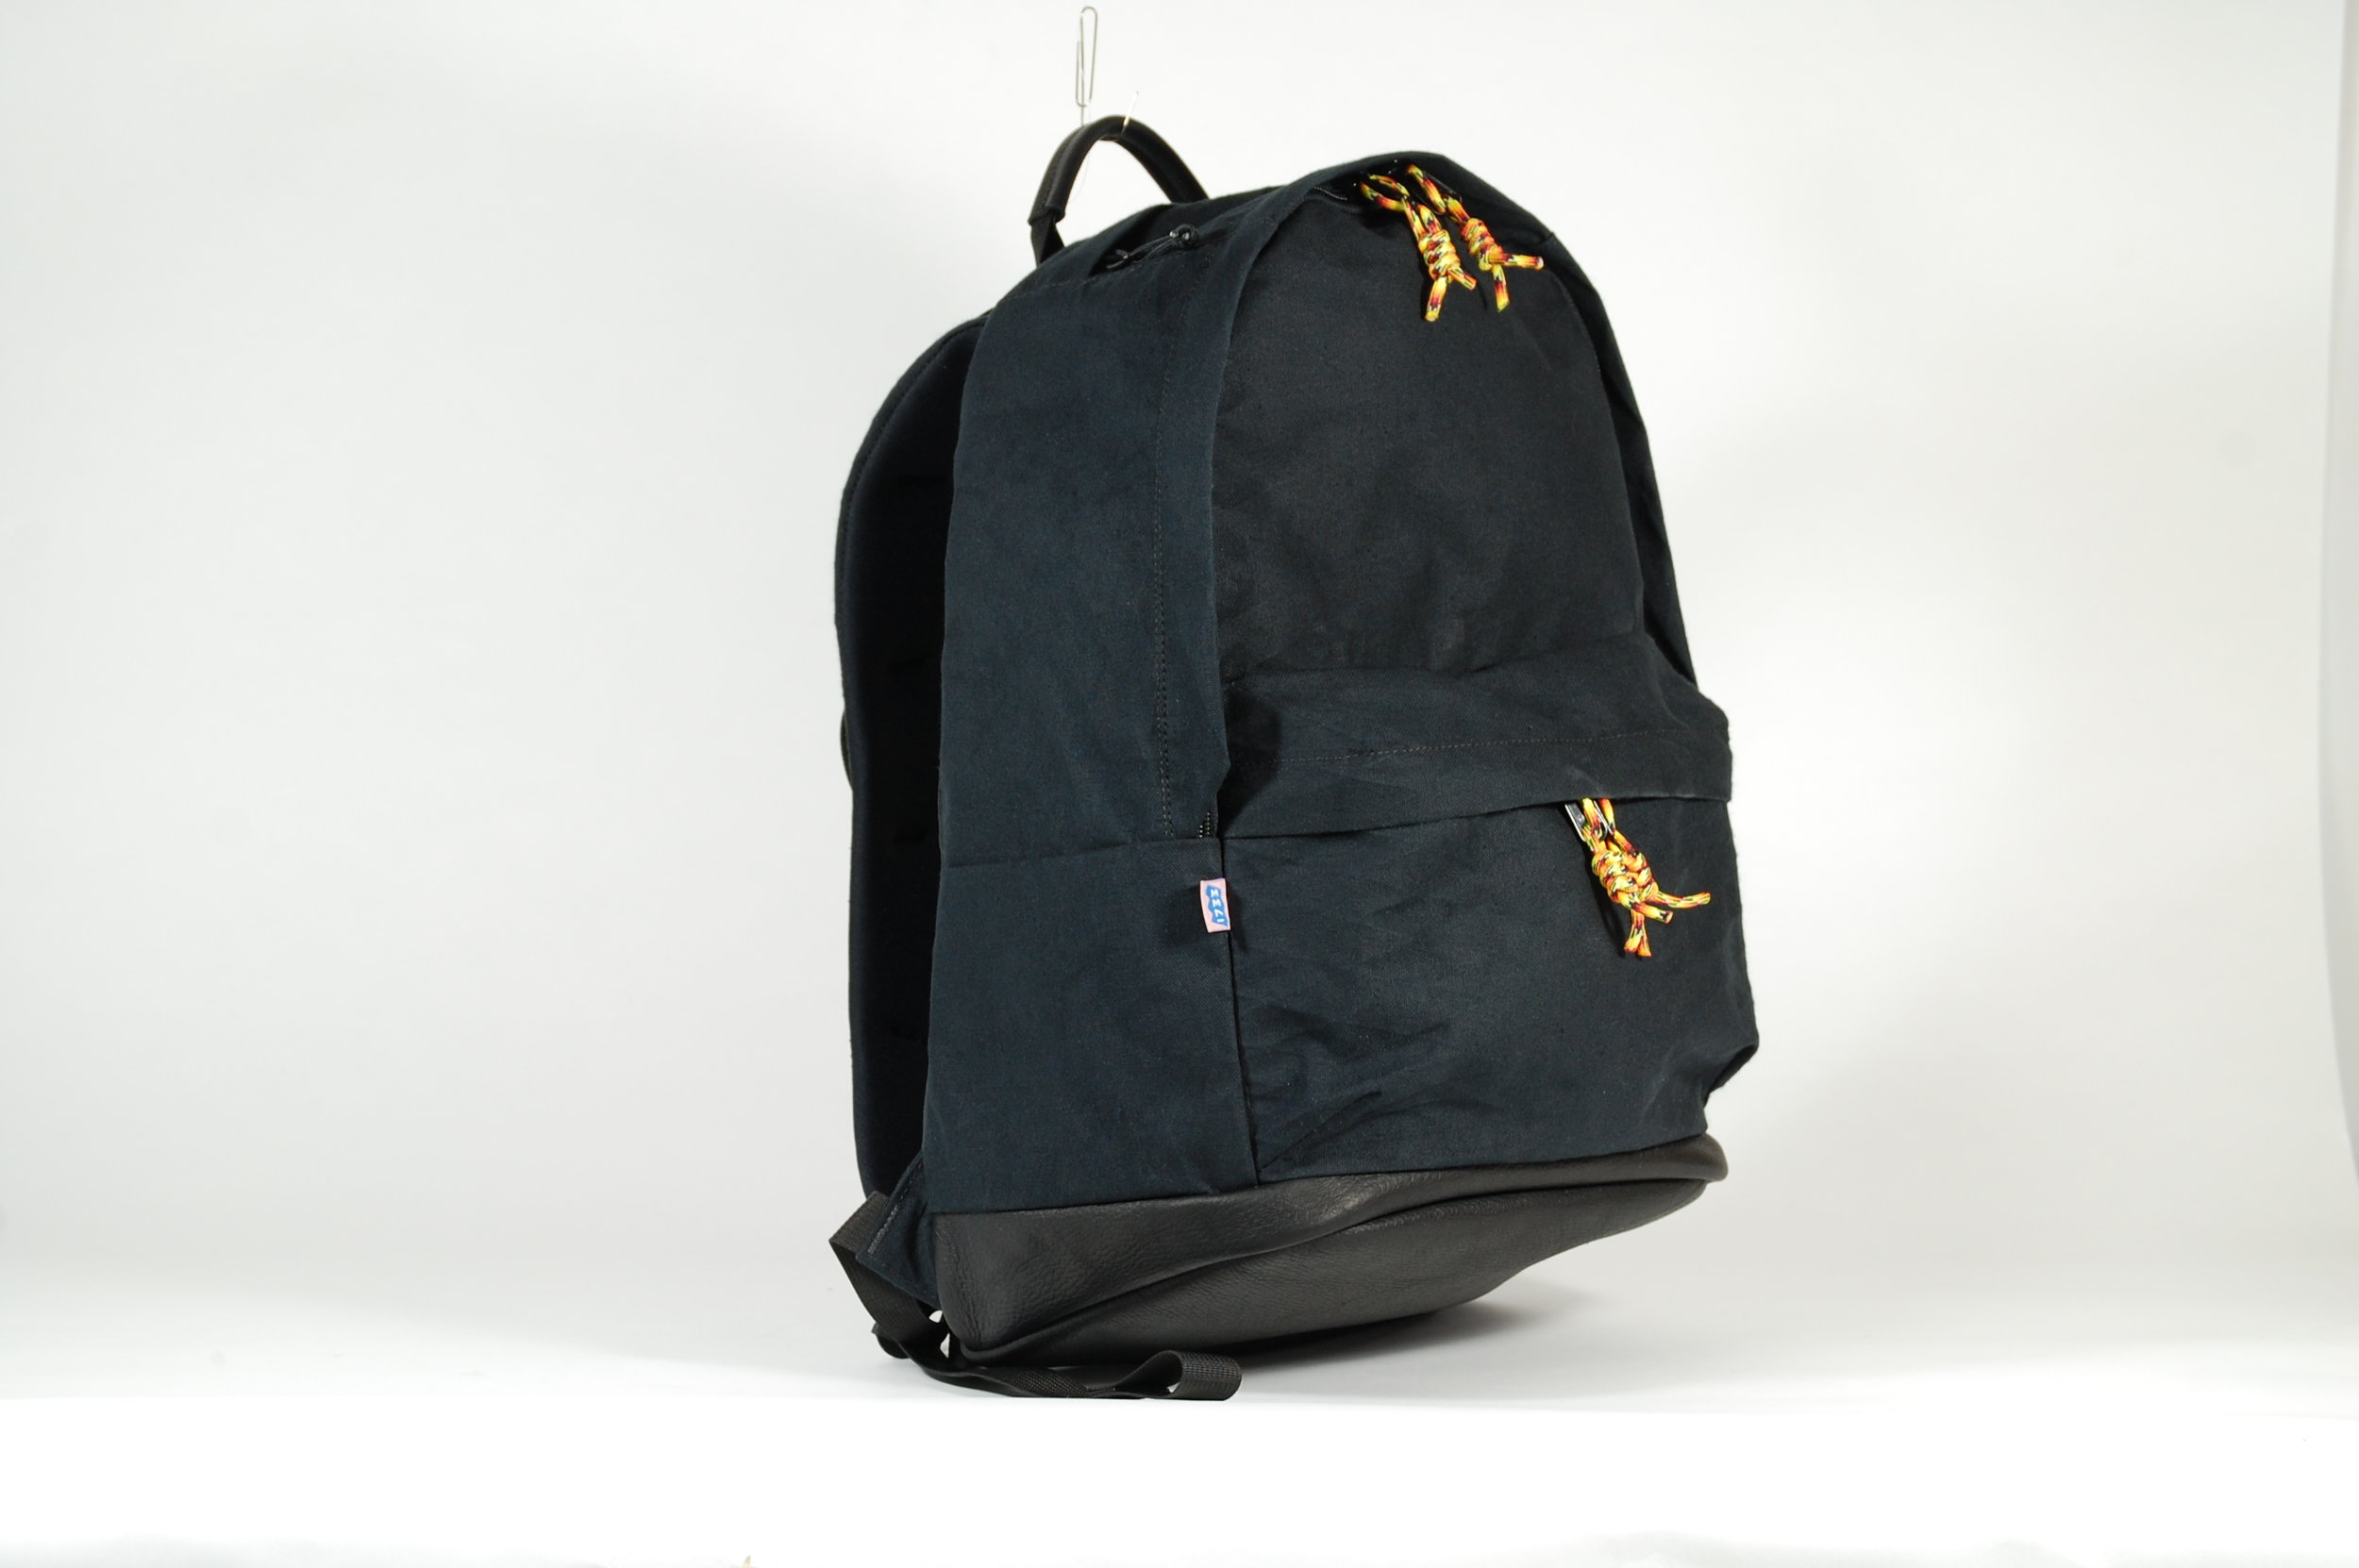 Bookbag in X10 canvas and leather with padded backpanel and neoprene laptop sleeve